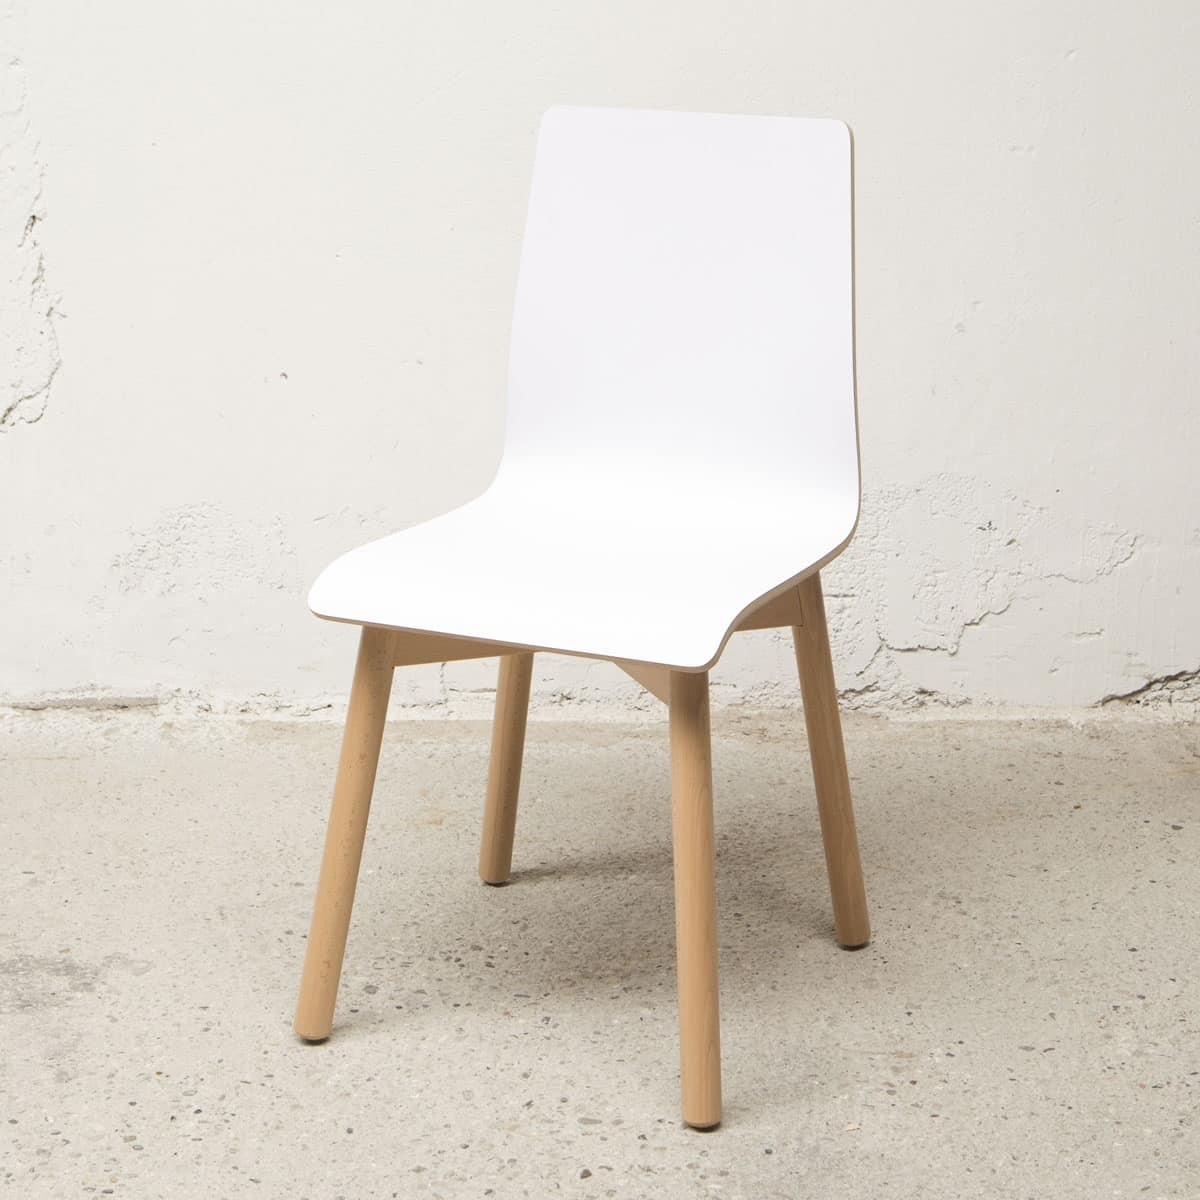 Chair Bolz, Removable chair, resistant to scratches and shock